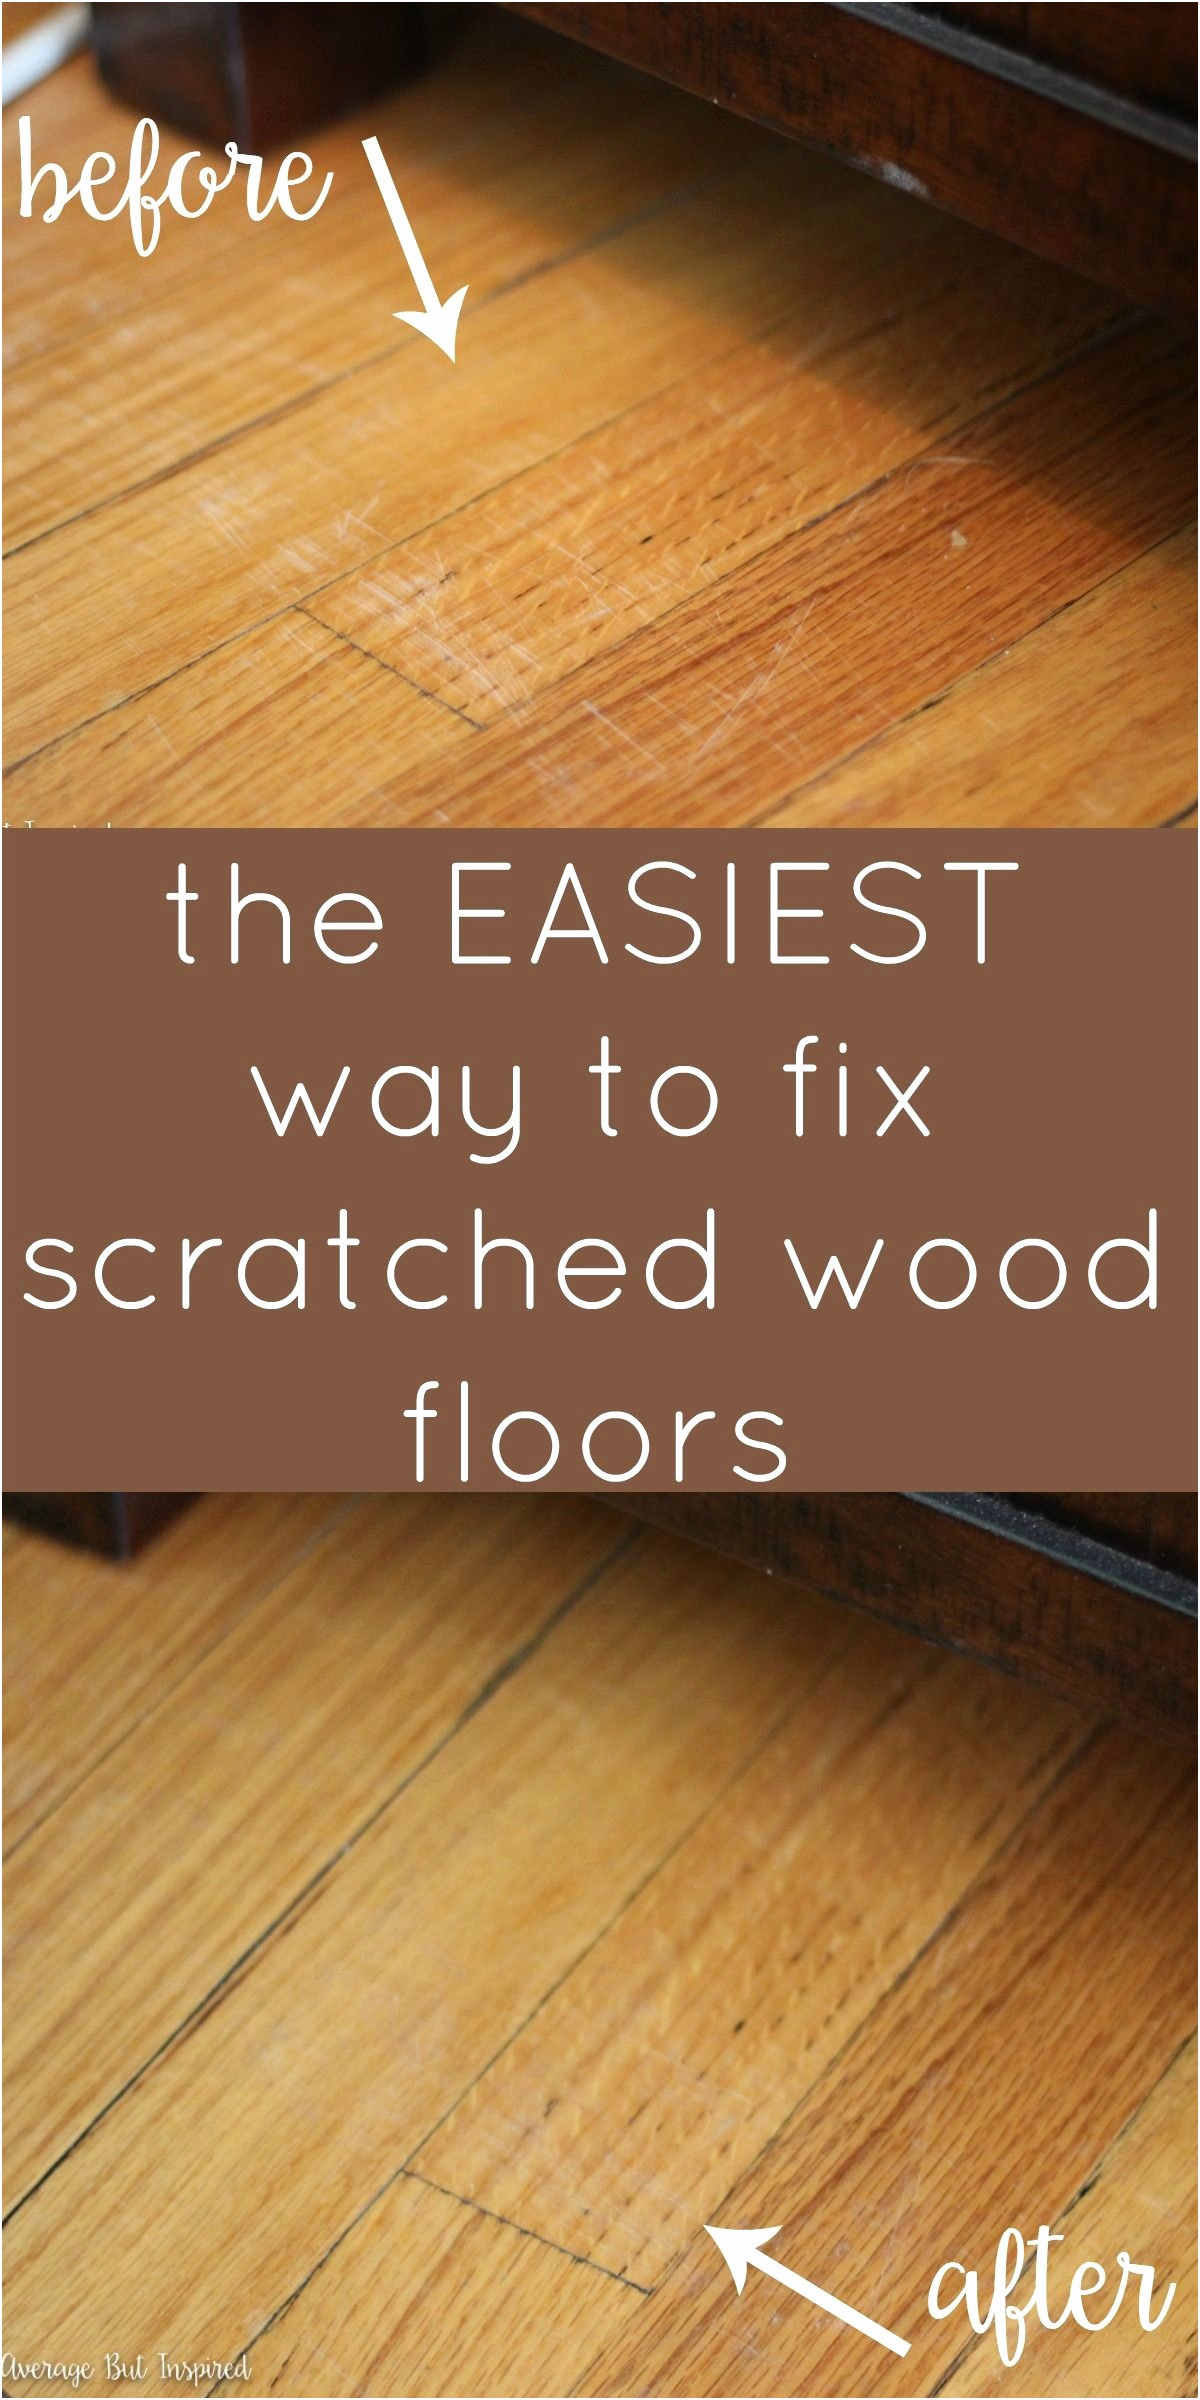 hardwood floor refinishing ct cost of flooring cost 51 awesome how much does laminate flooring cost pics inside flooring cost 50 best hardwood flooring ct graphics 50 s